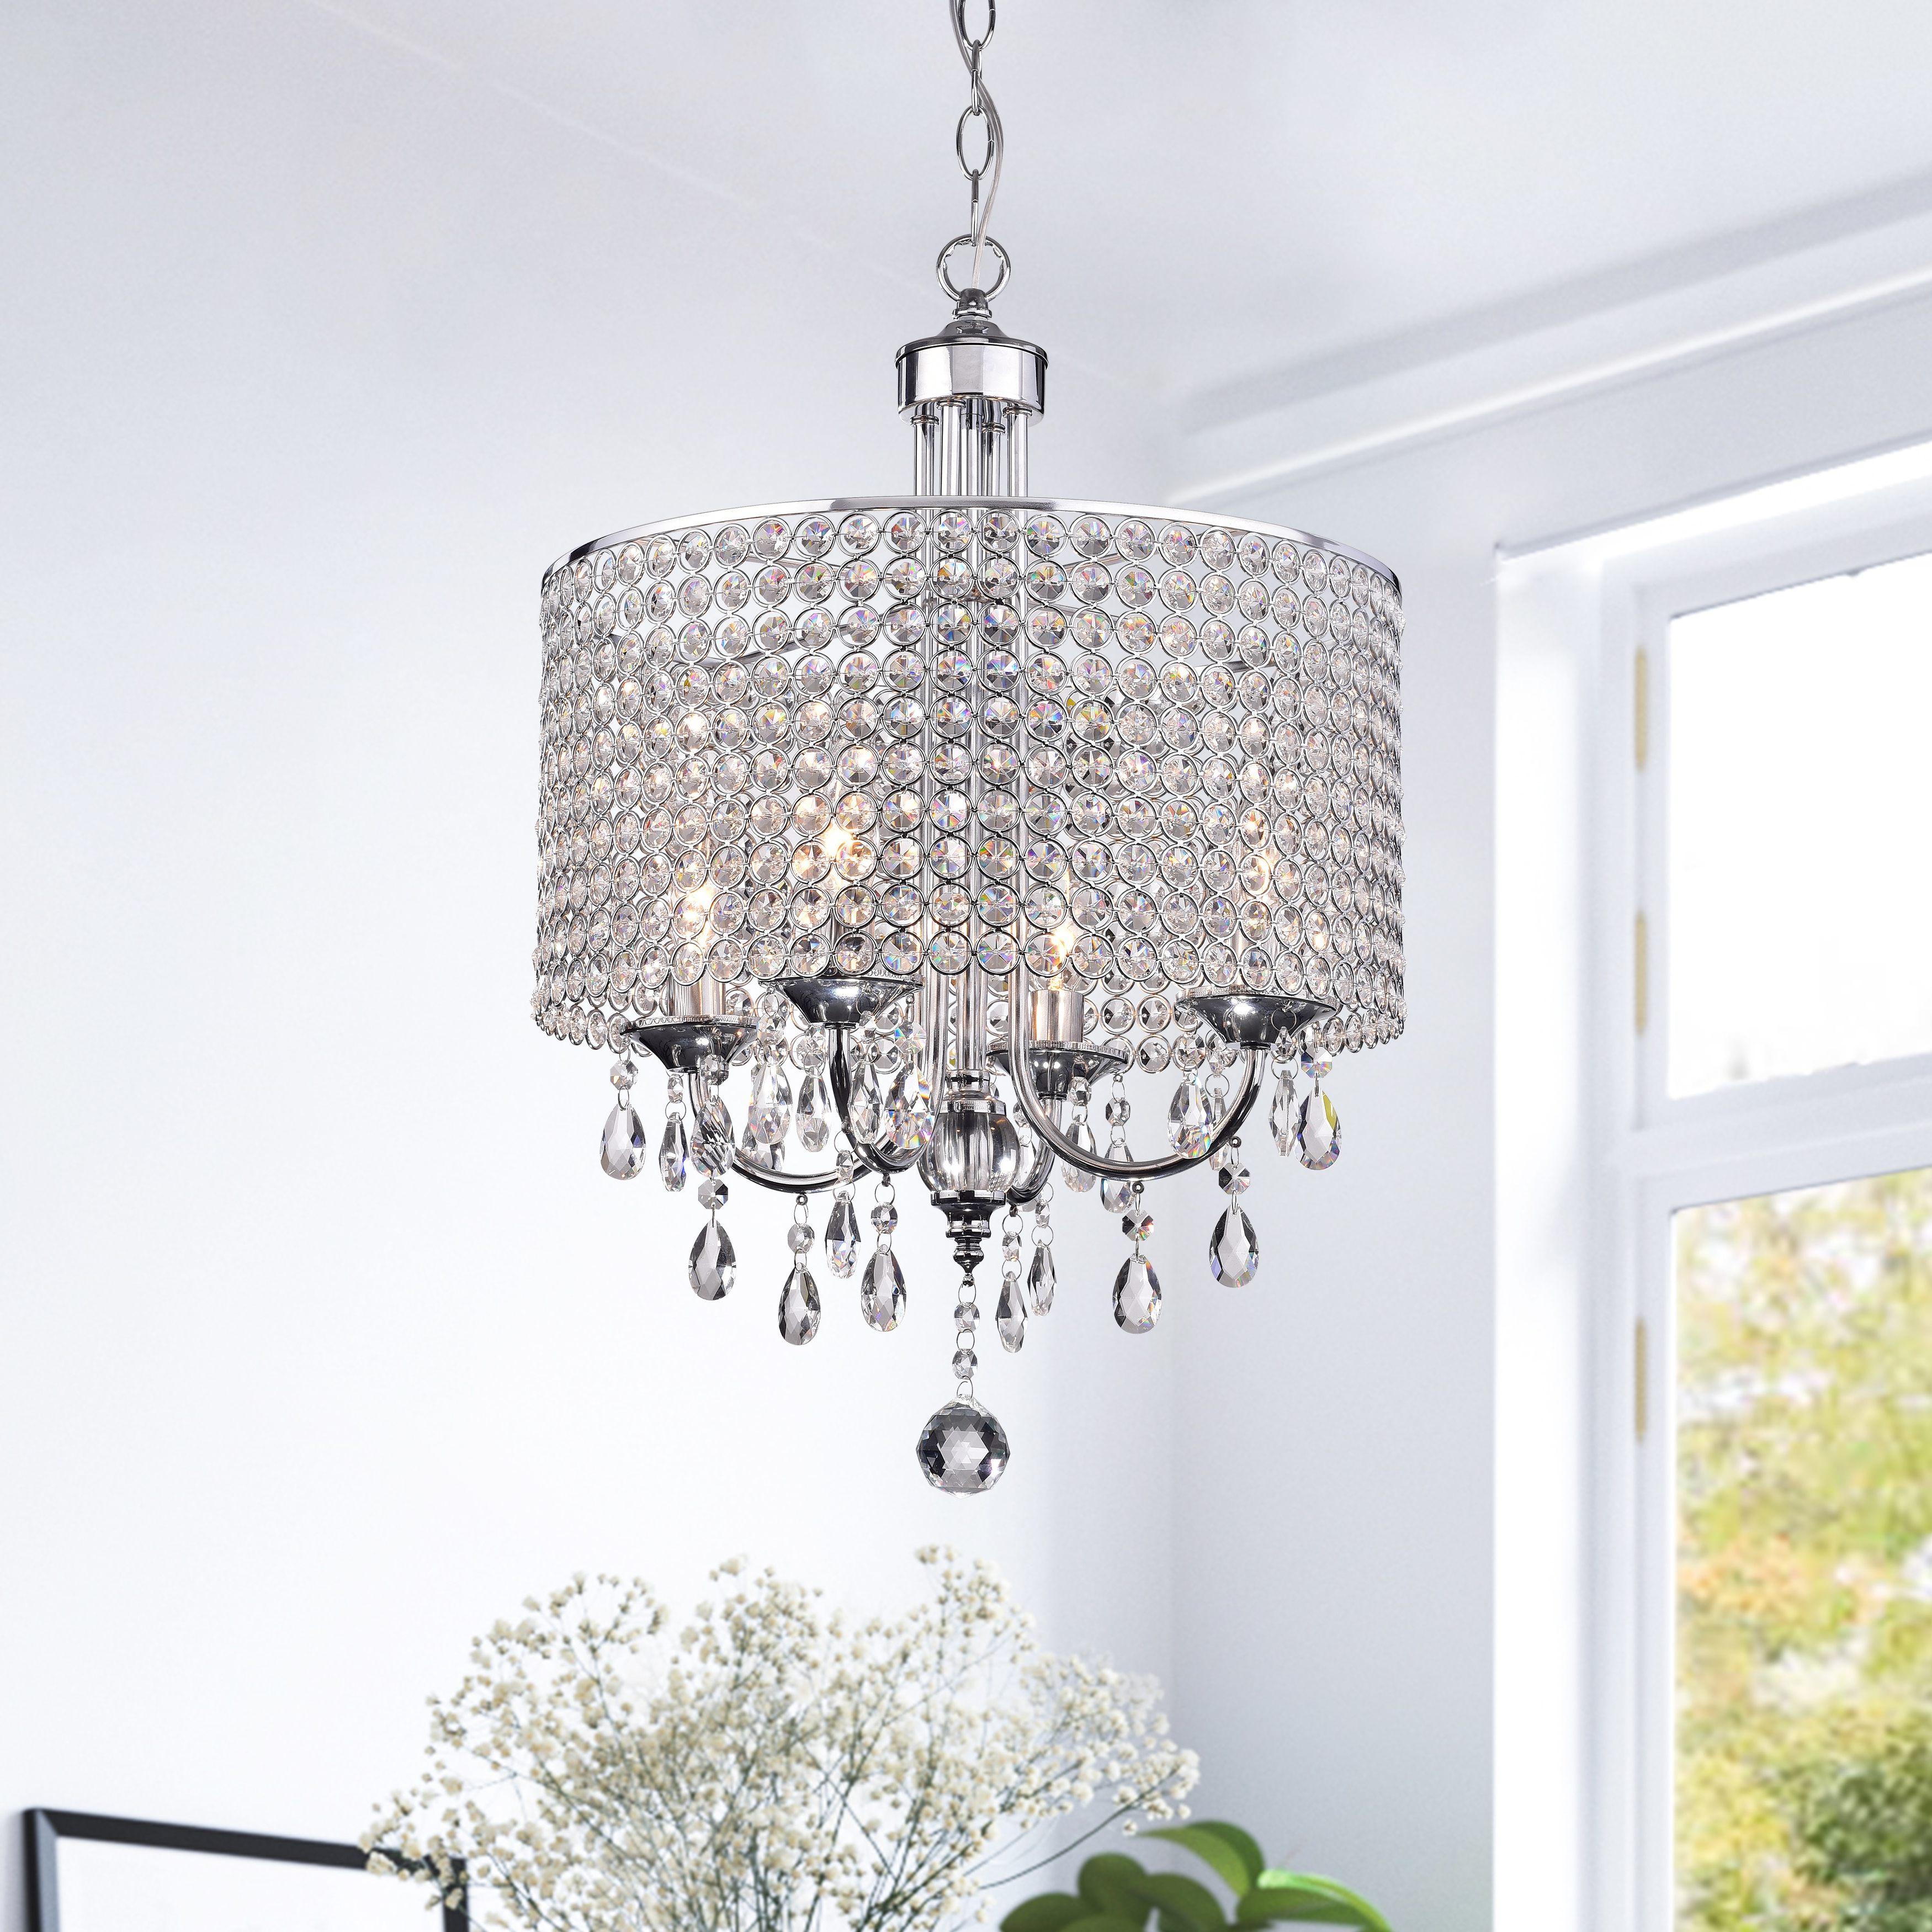 Most Current Silver Orchid Taylor 4 Light Chrome Finish Crystal Intended For Albano 4 Light Crystal Chandeliers (View 12 of 25)